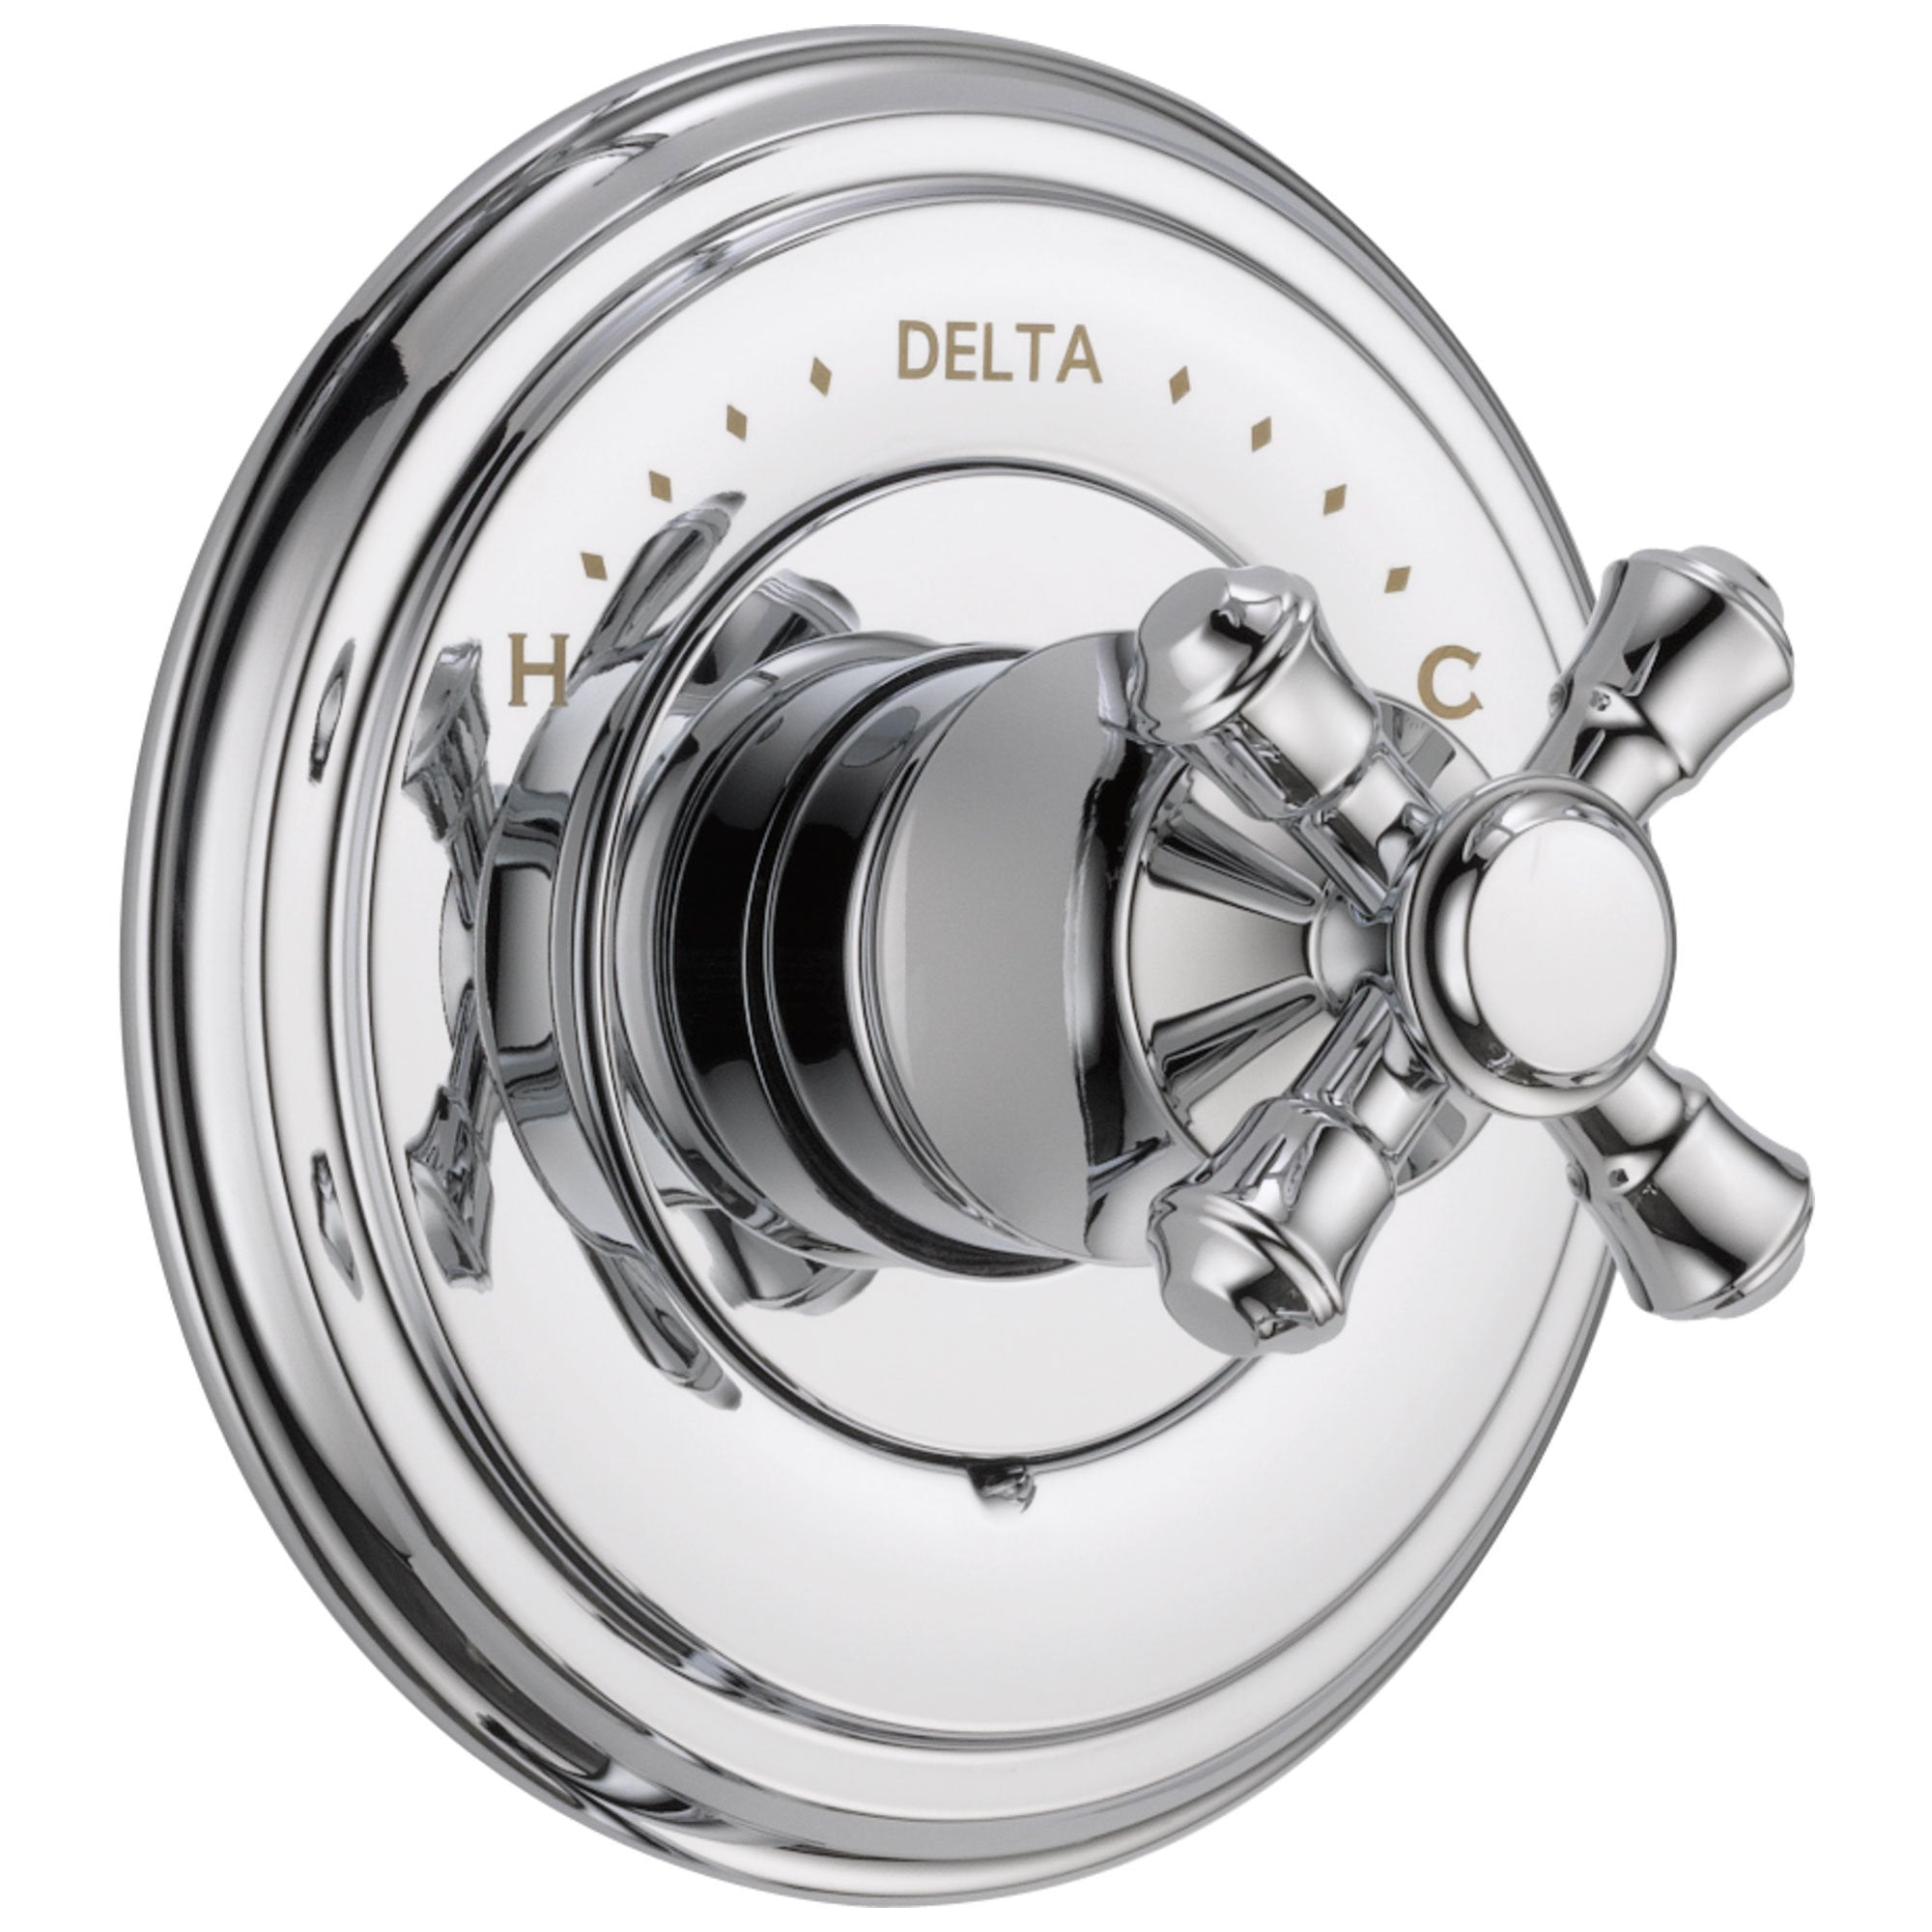 Delta Cassidy Collection Chrome Finish Monitor 14 Series Shower Faucet Control Complete Item With Single Cross Handle And Rough In Valve Without Stops